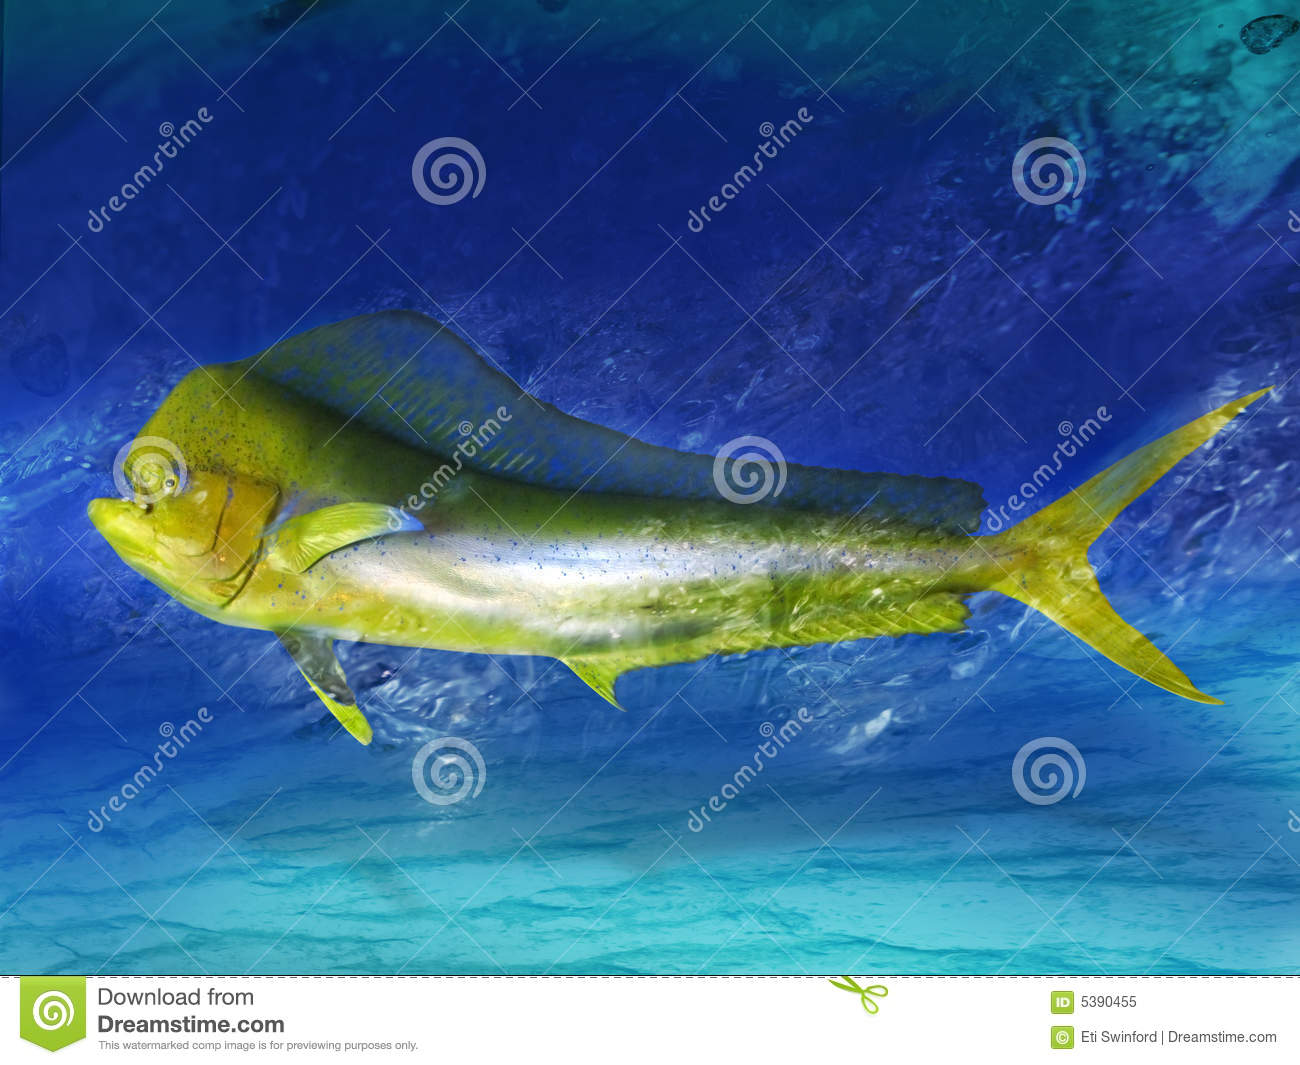 Dolphin fish royalty free stock photo image 5390455 for Dolphin fish pictures